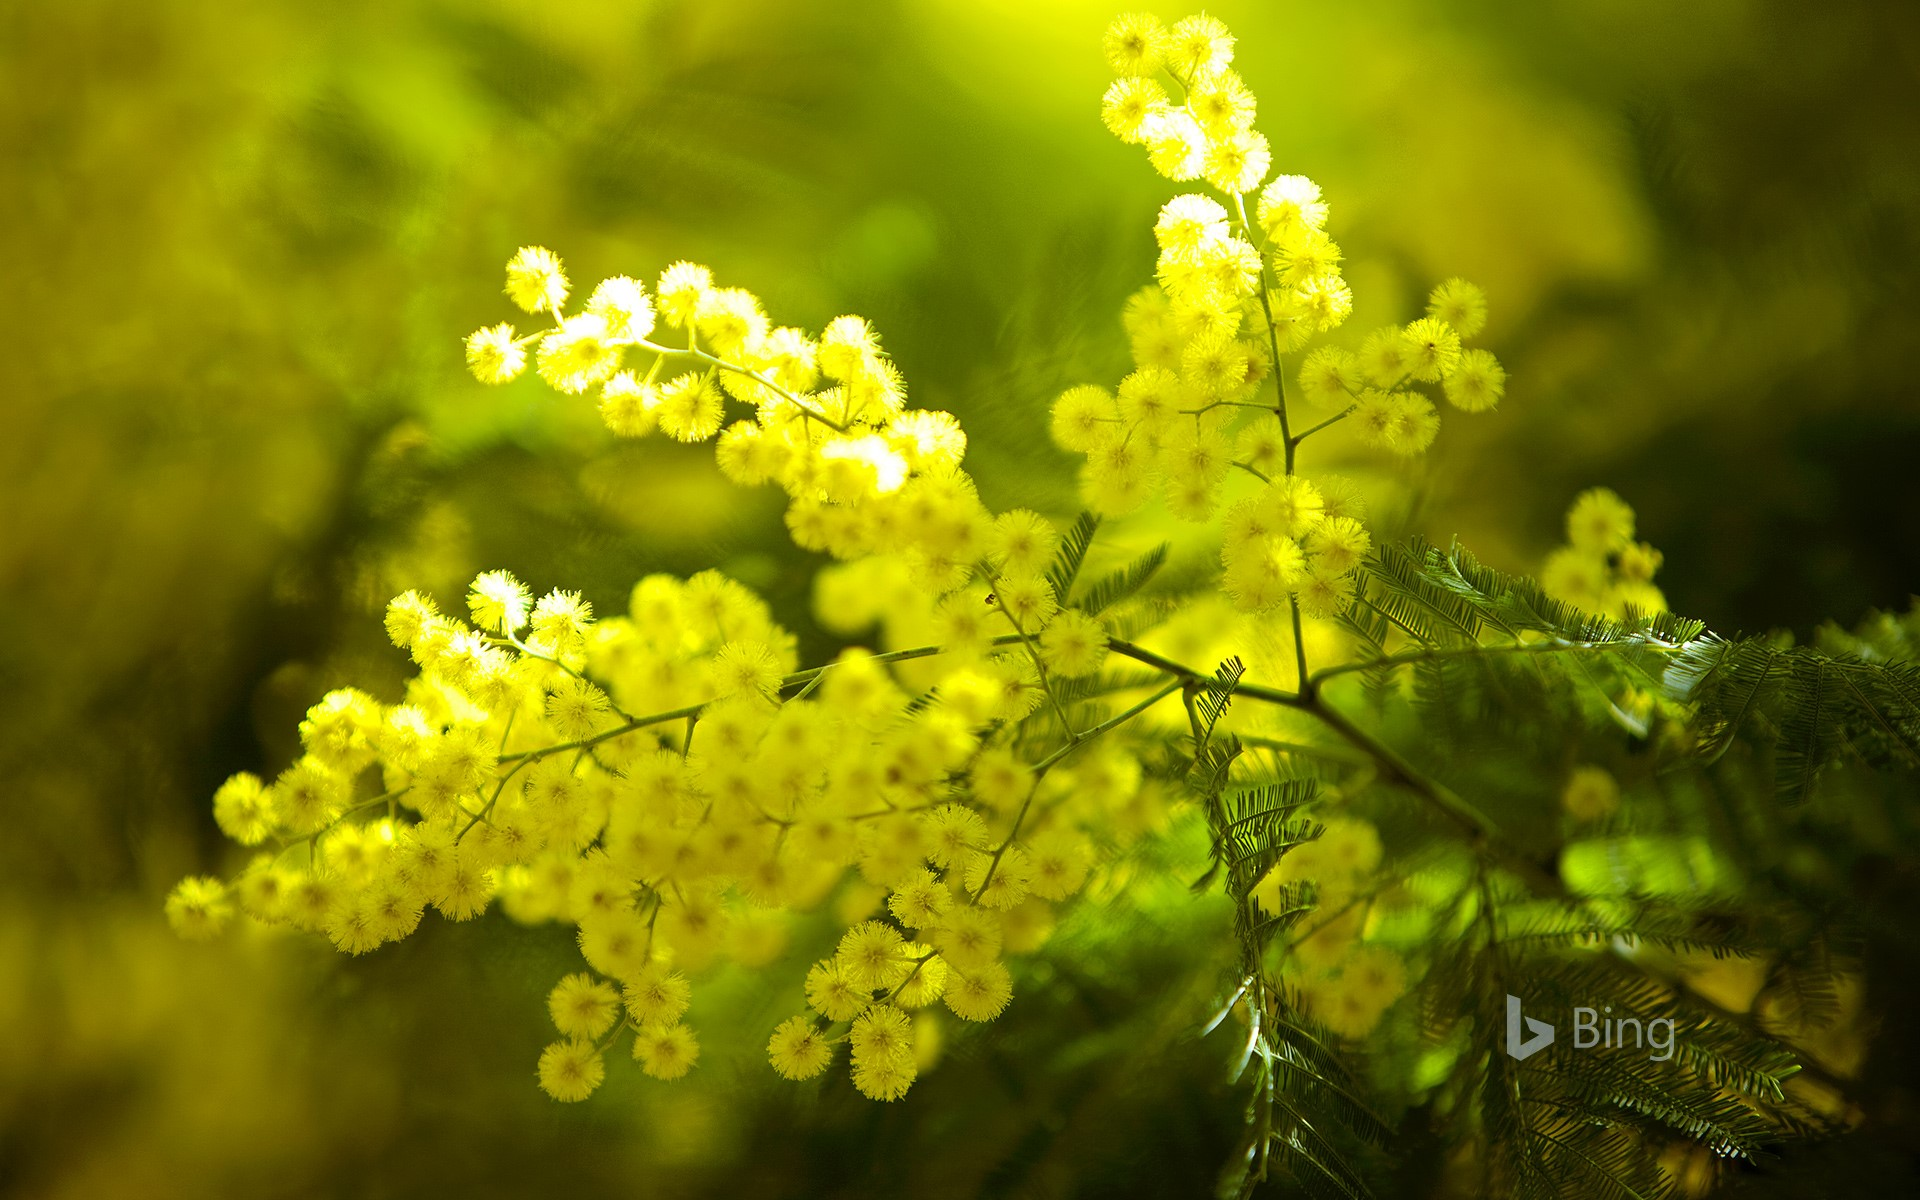 Mimosa flowers on the Tanneron Massive, France